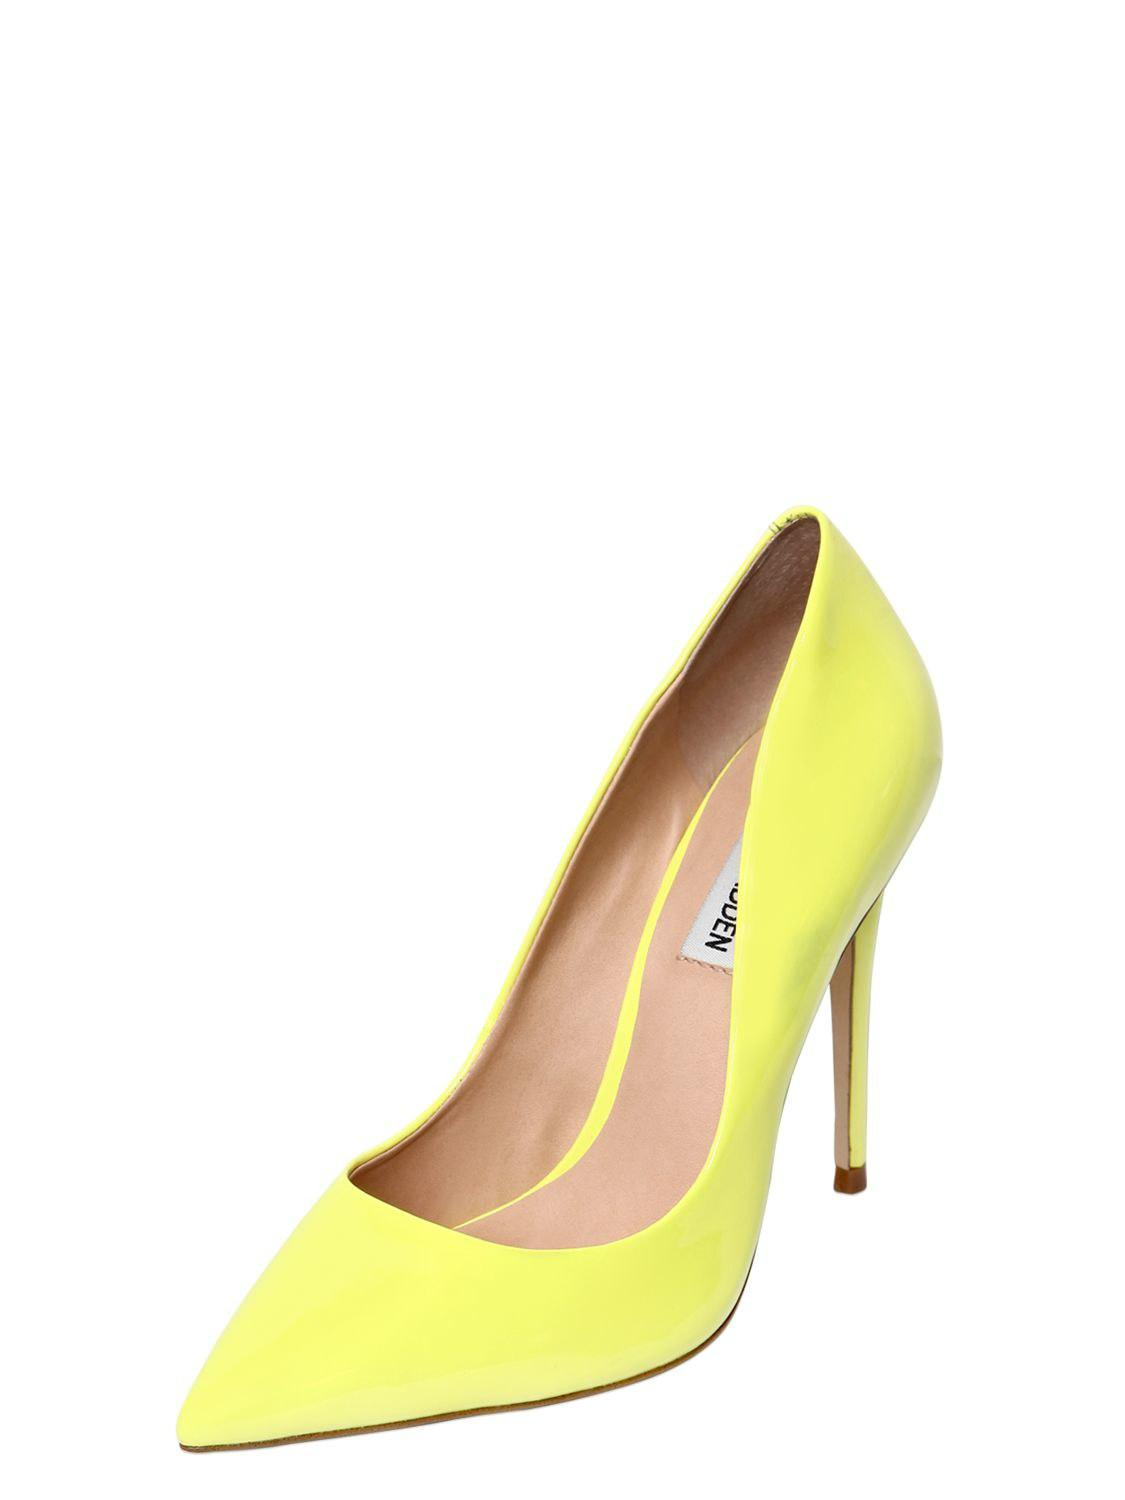 bae145bf6dec Lyst - Steve Madden 100mm Daisie Faux Patent Leather Pumps in Yellow - Save  30%